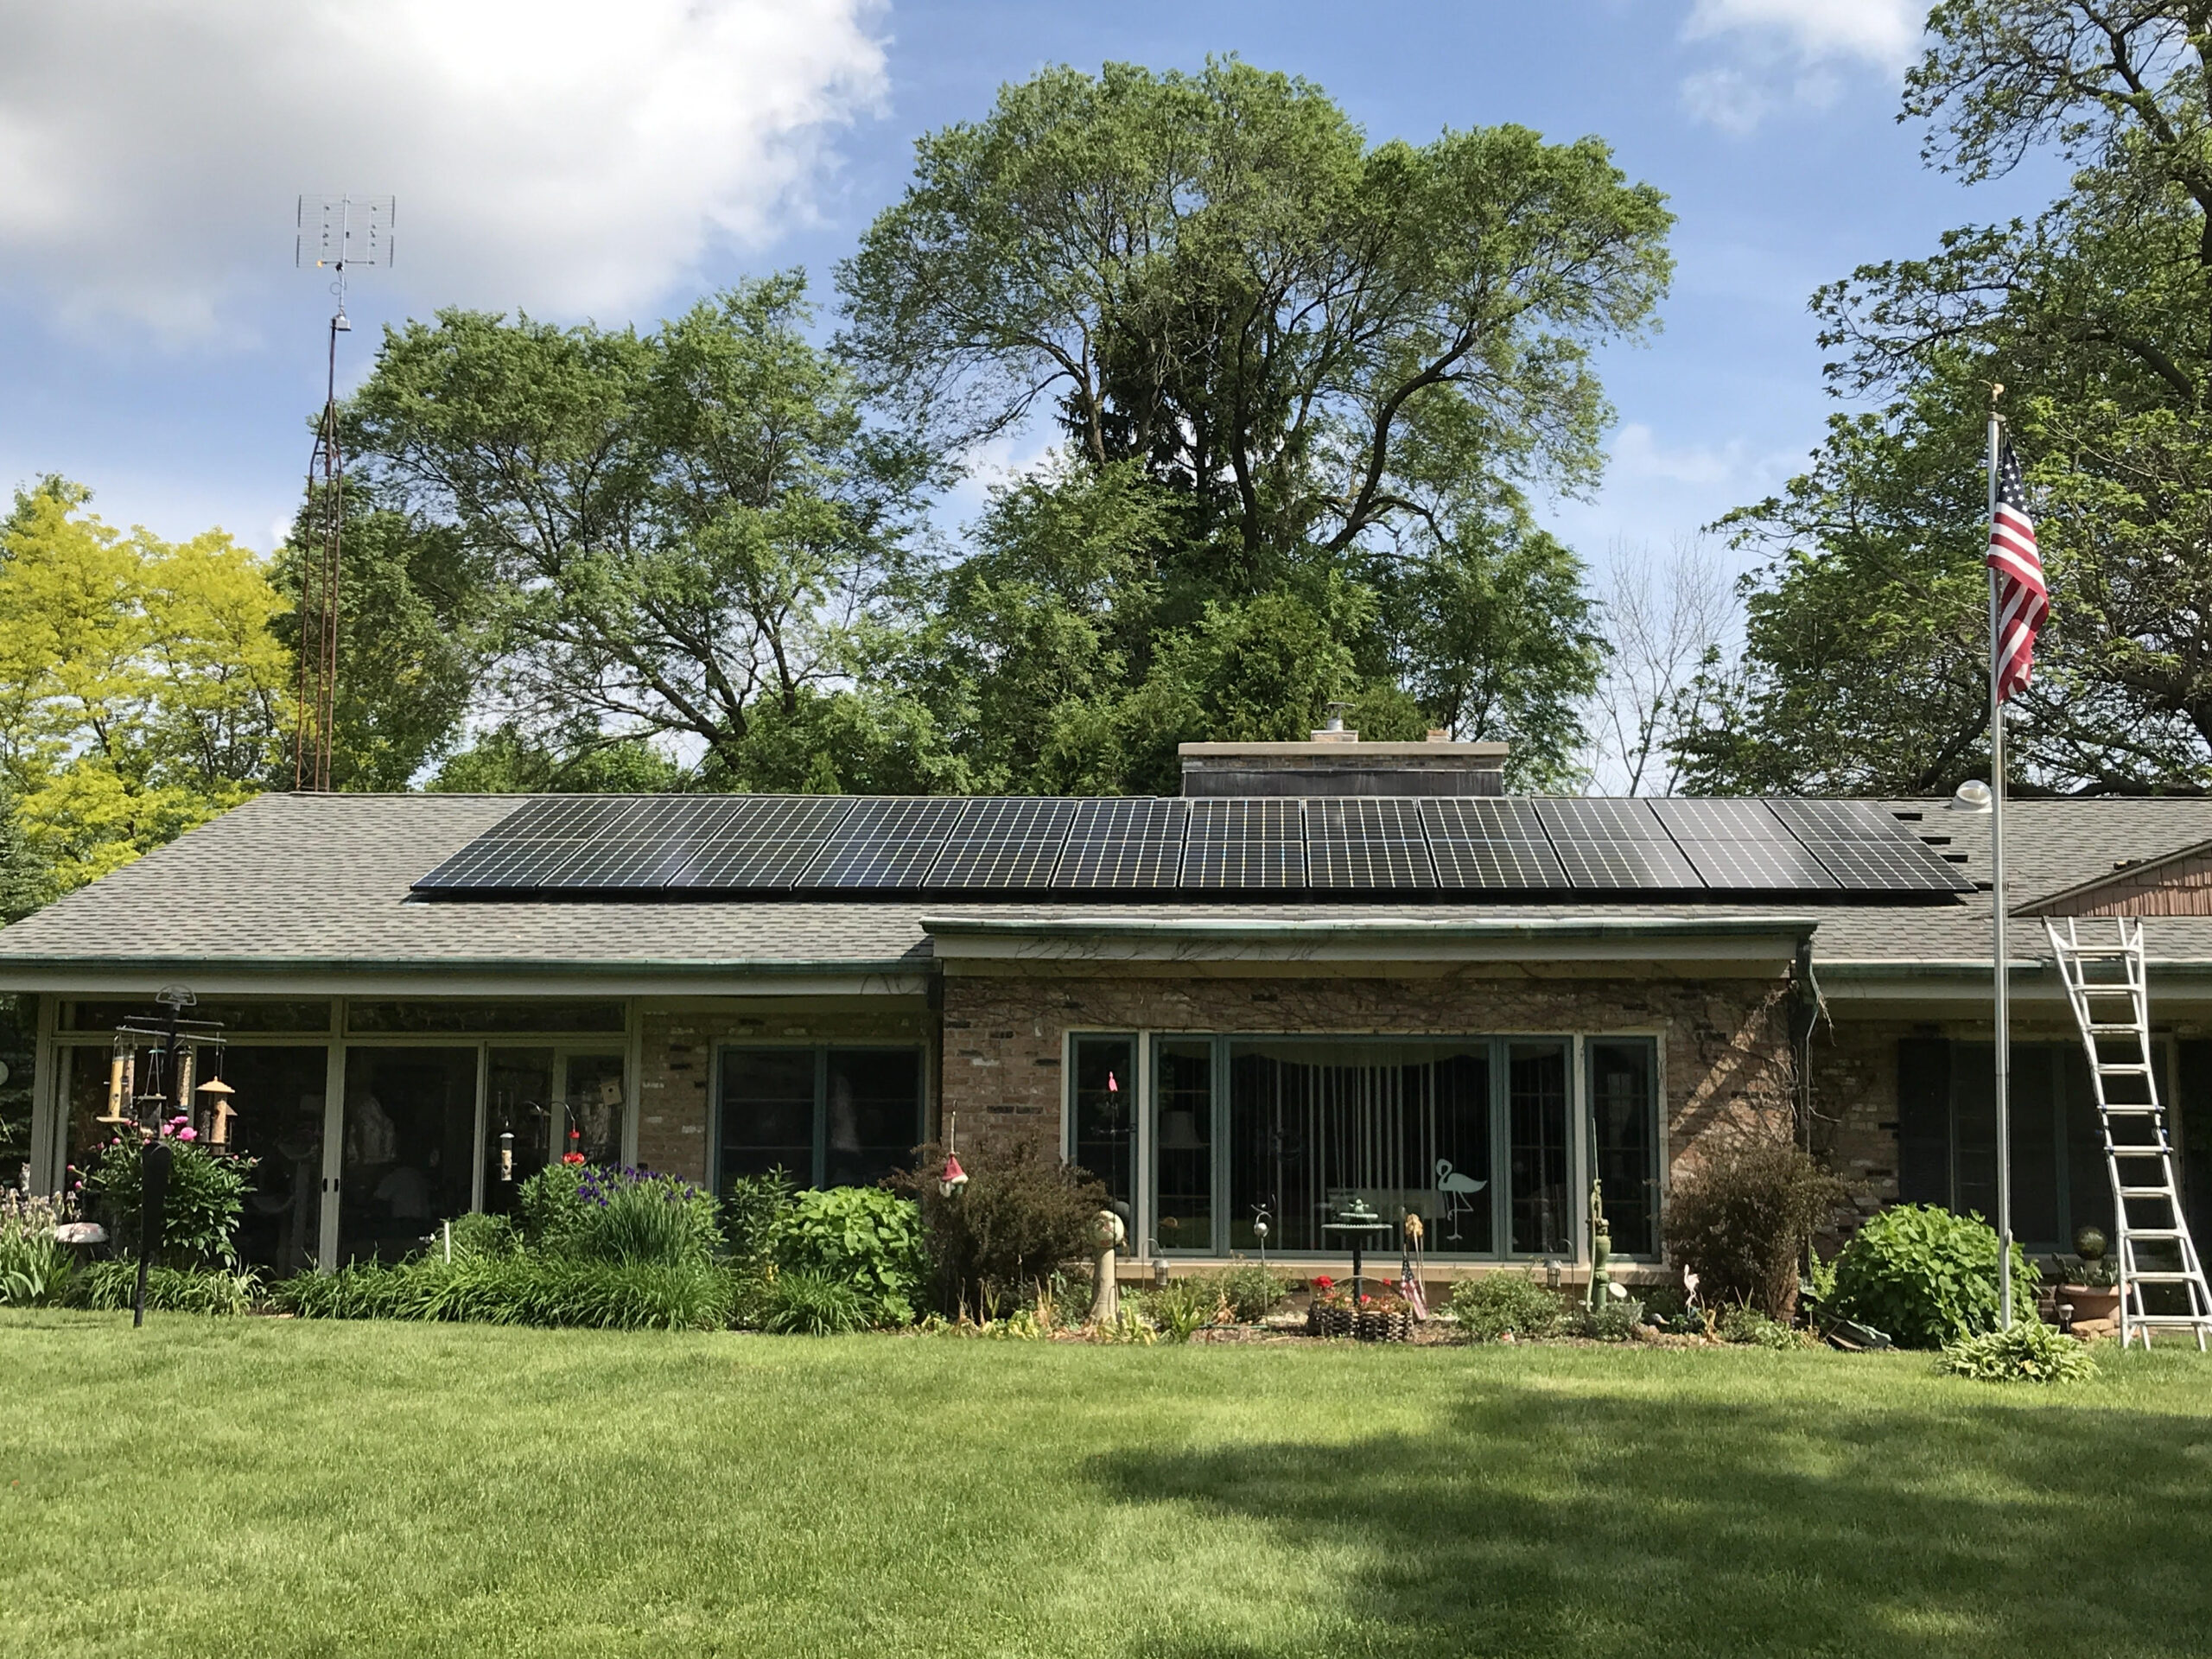 solar roi calculator. Solar panels on a home.